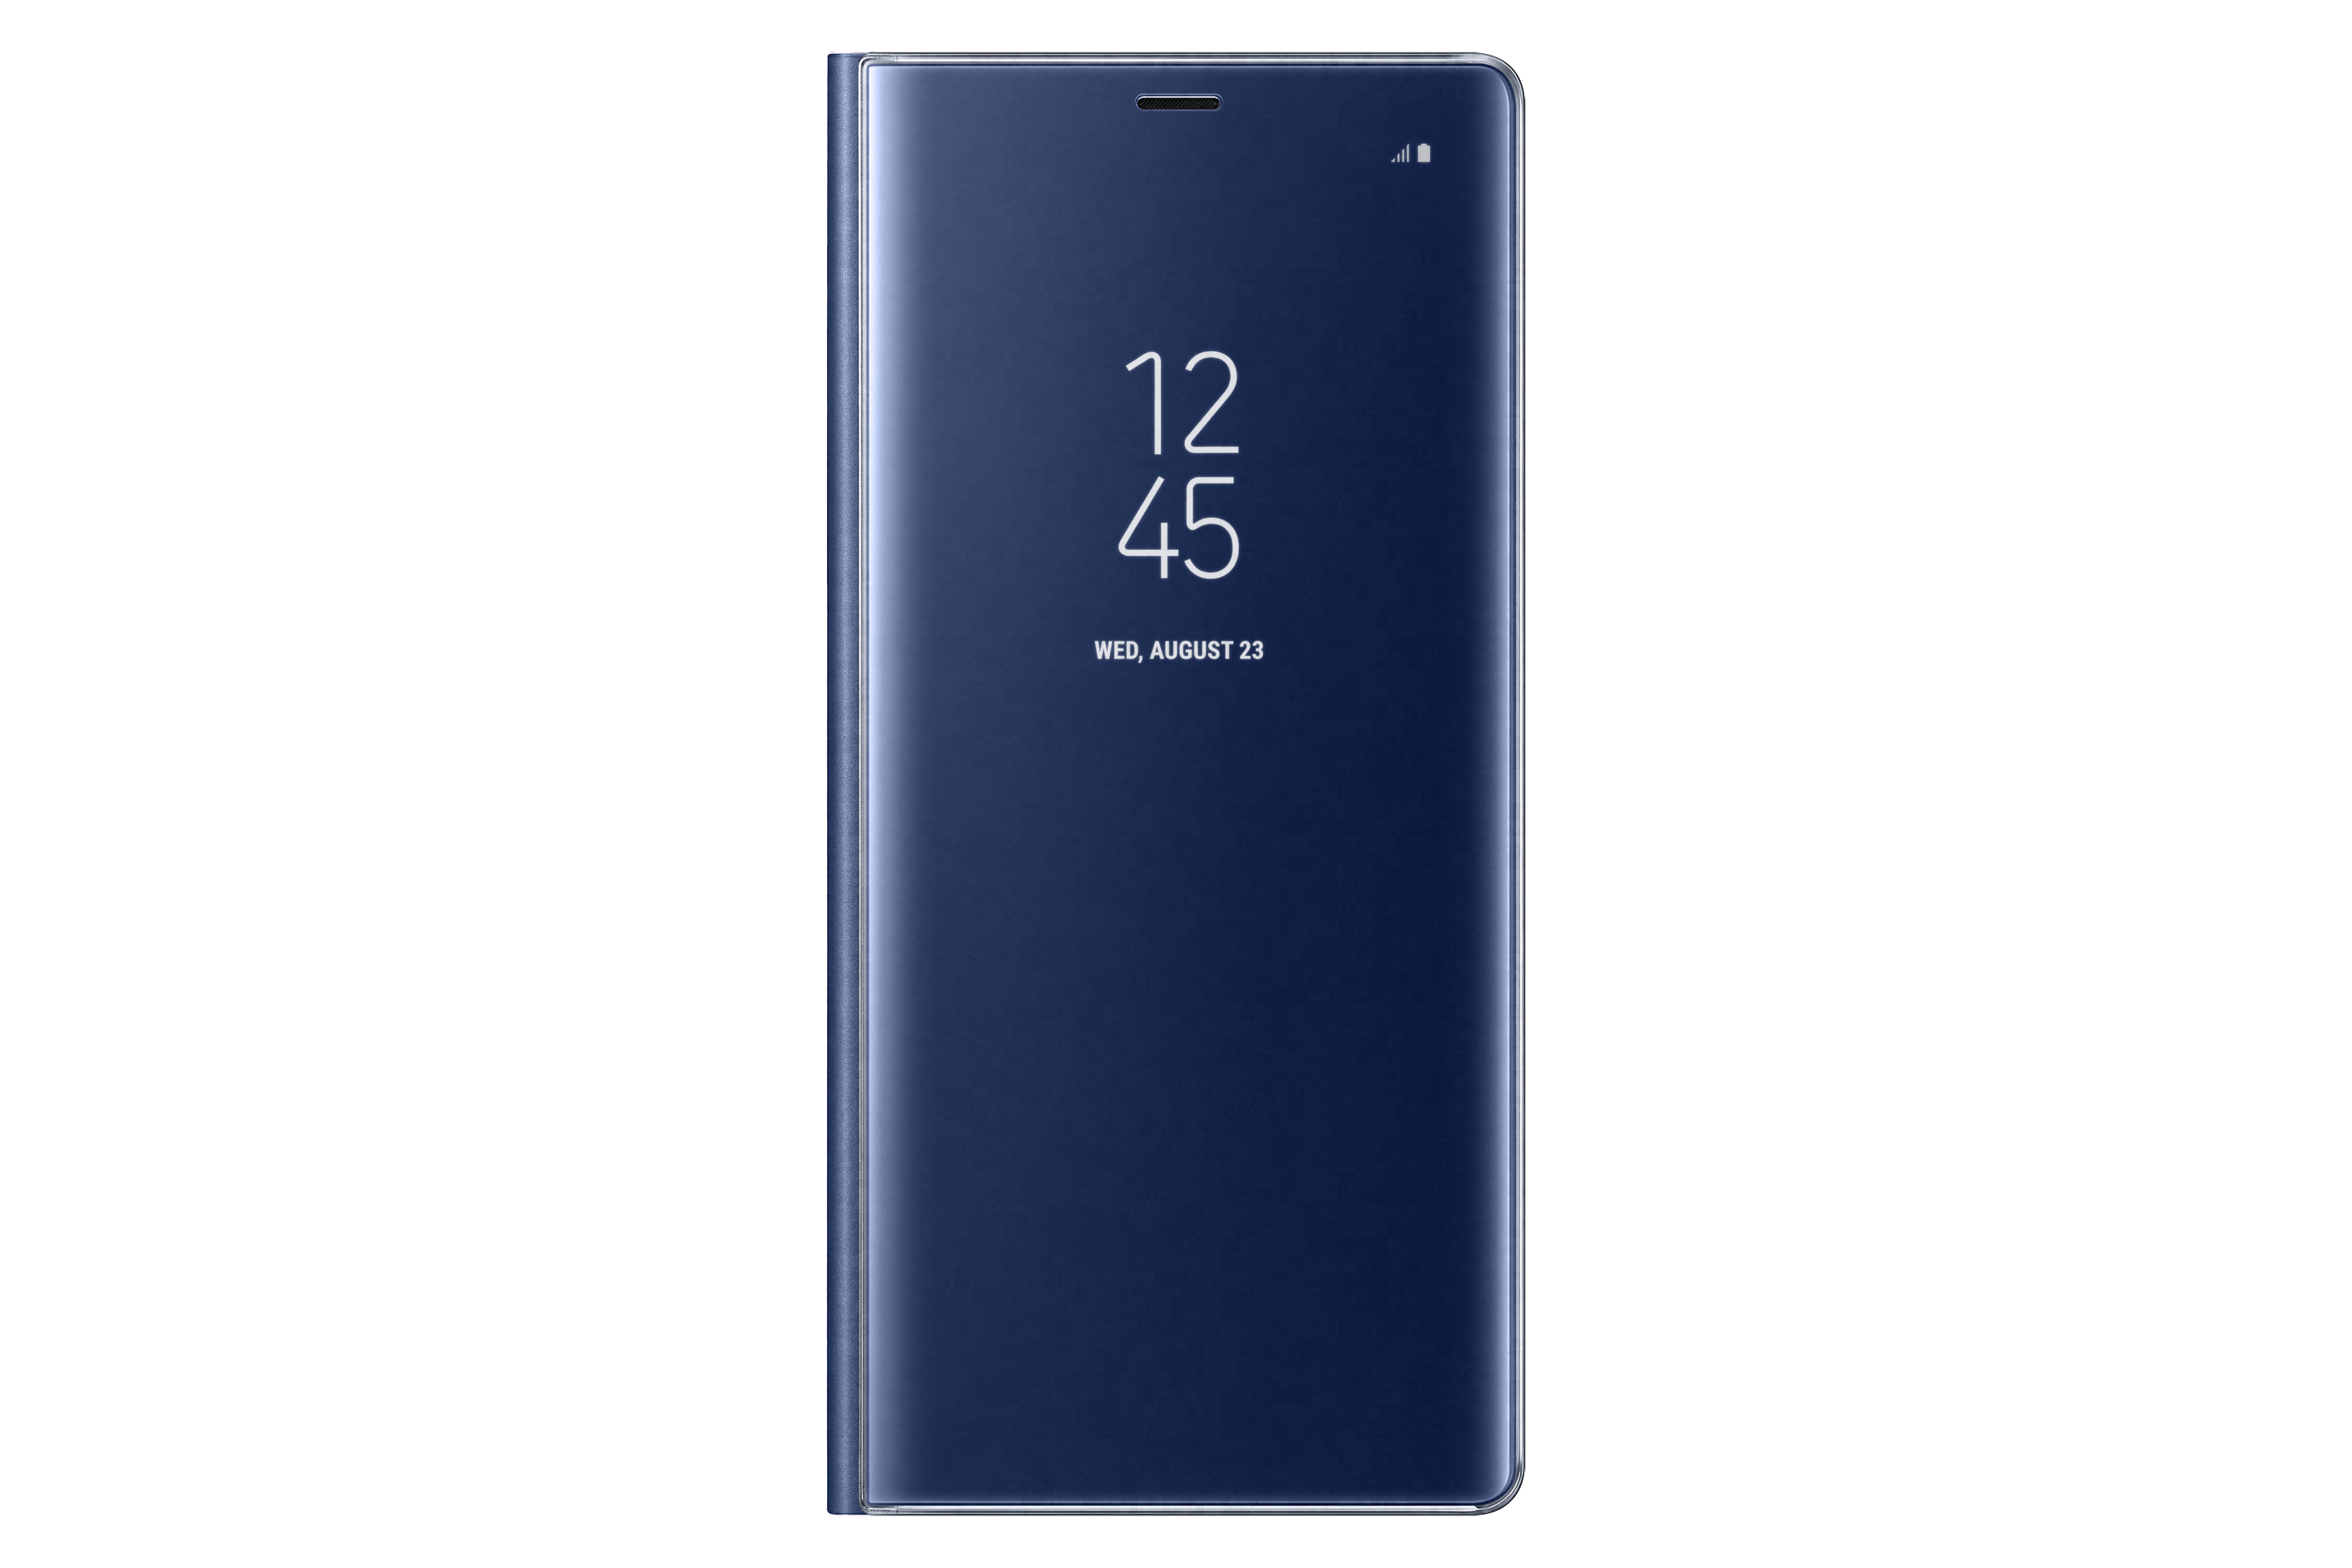 Preklopni ovitek Clear View za Galaxy Note8